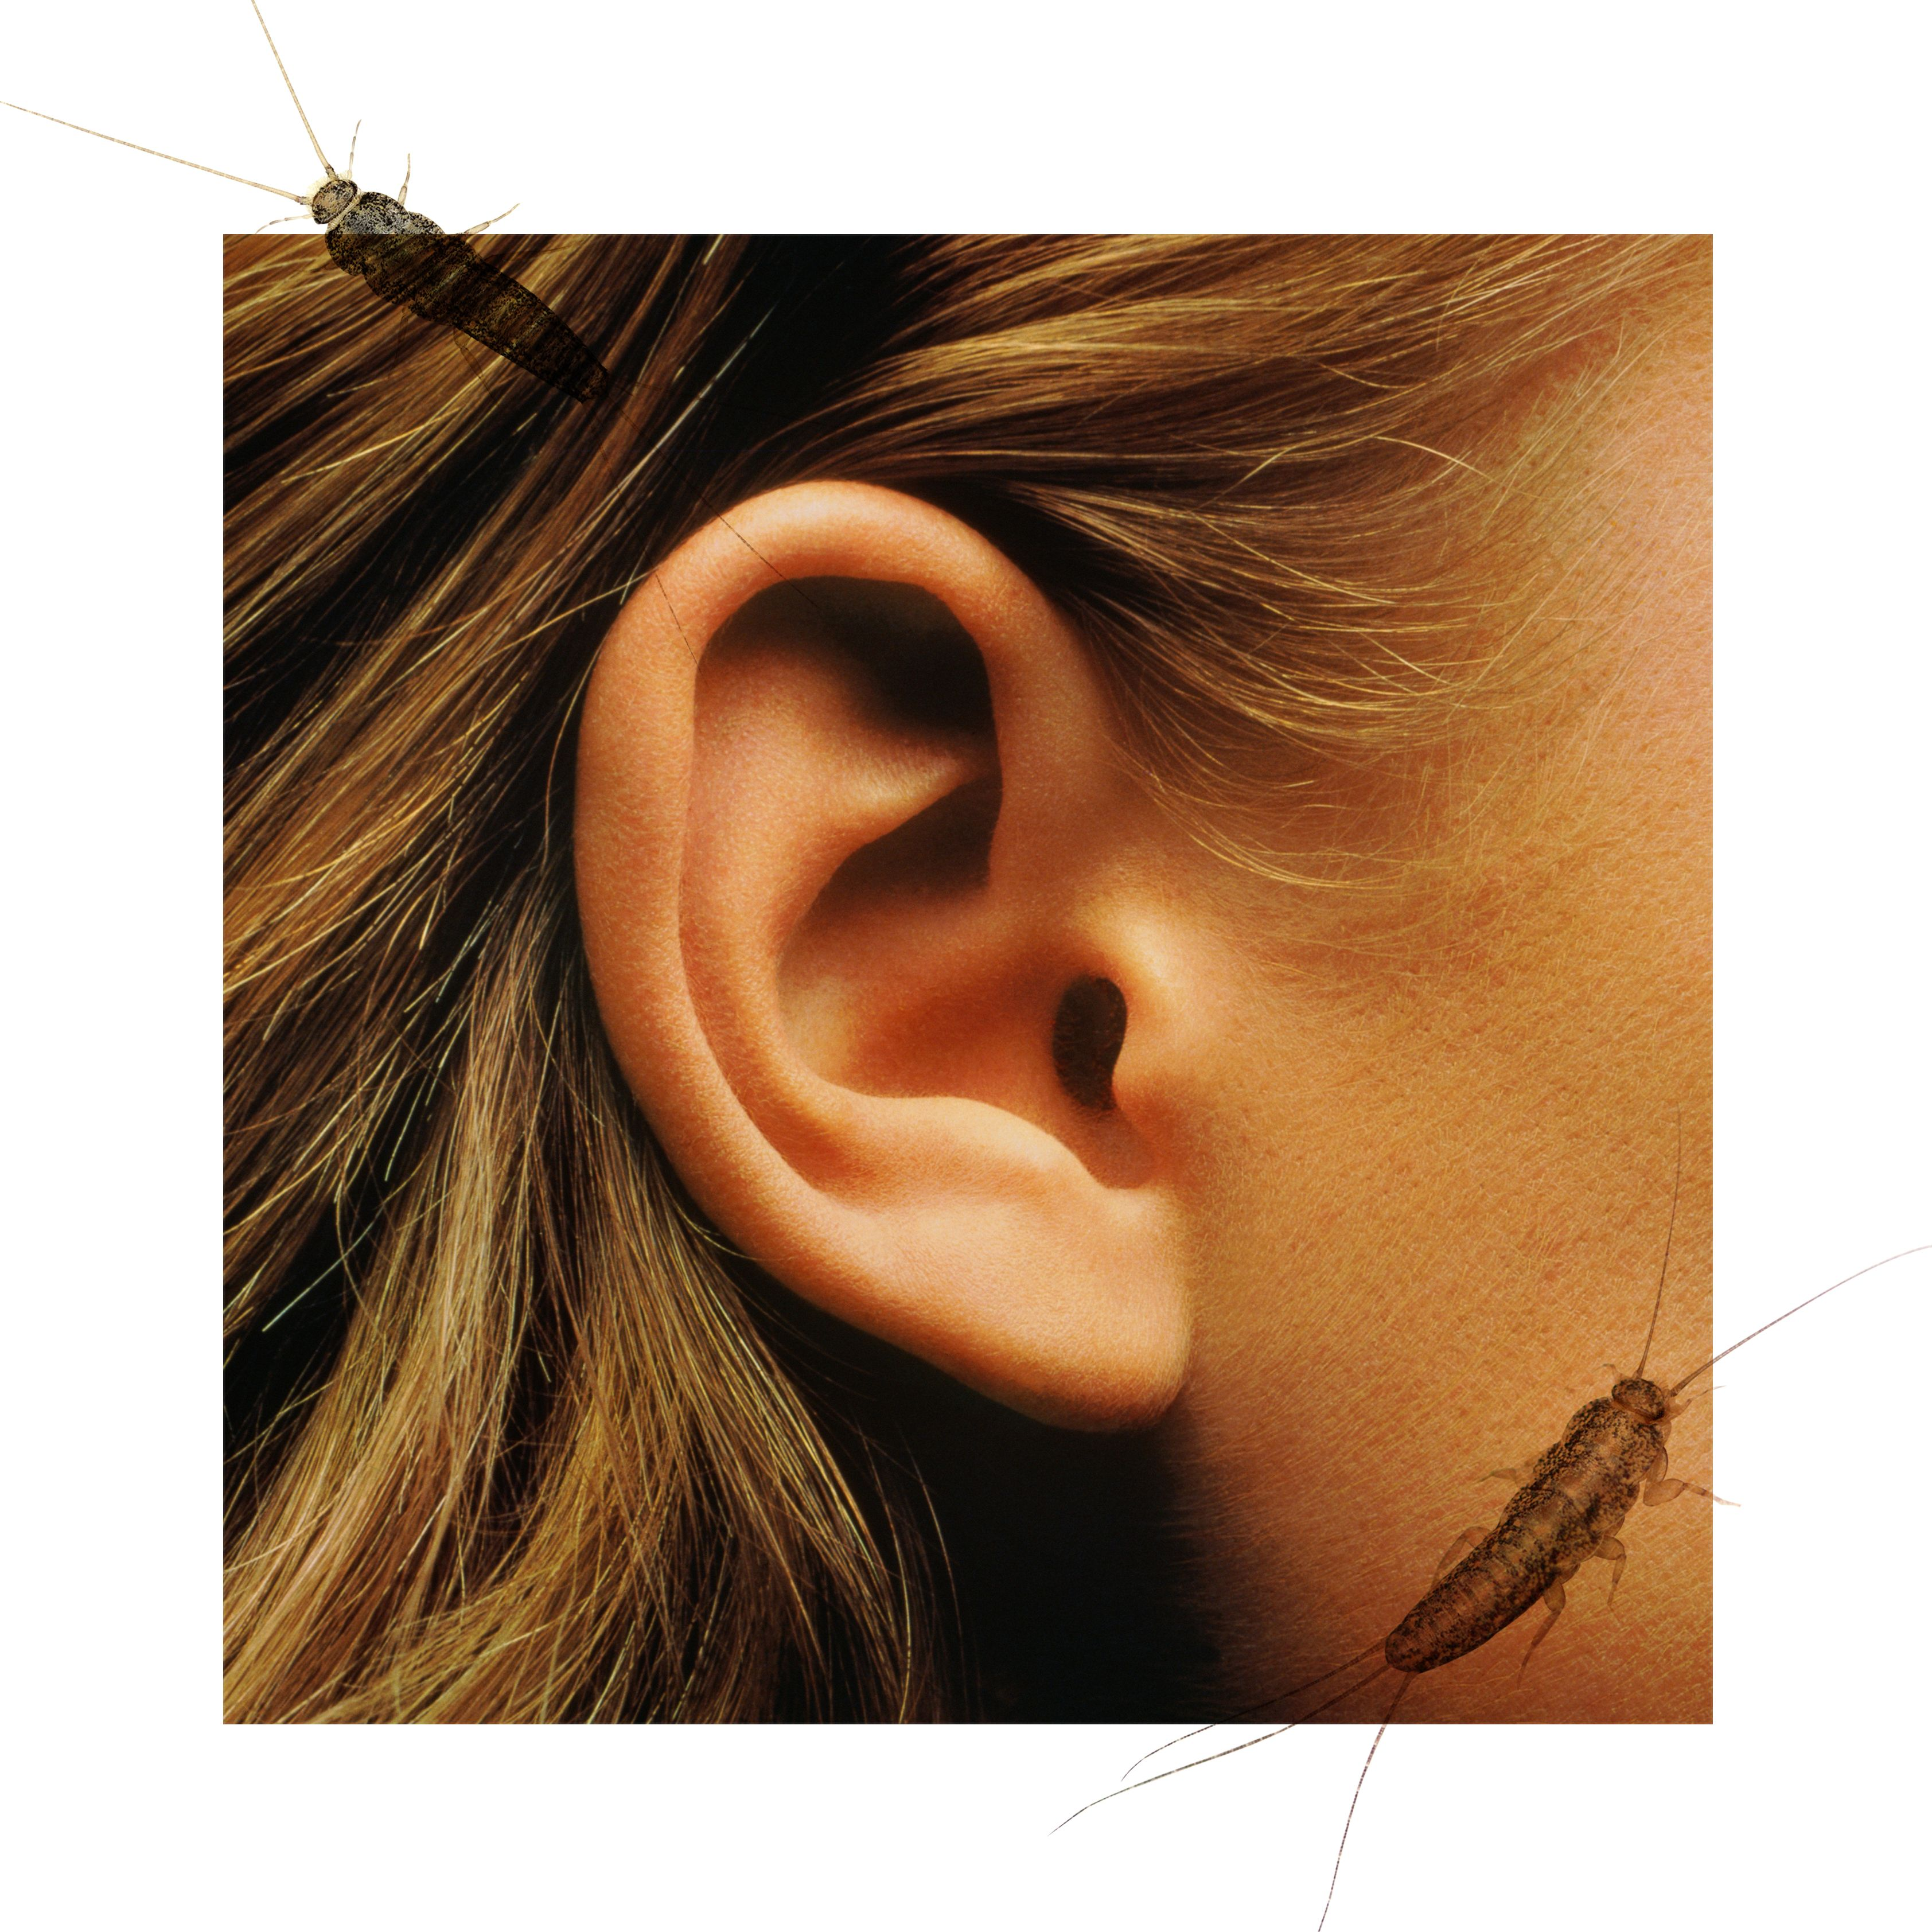 Forum on this topic: 1,877 pierced ears show why healthcare is , 1-877-pierced-ears-show-why-healthcare-is/